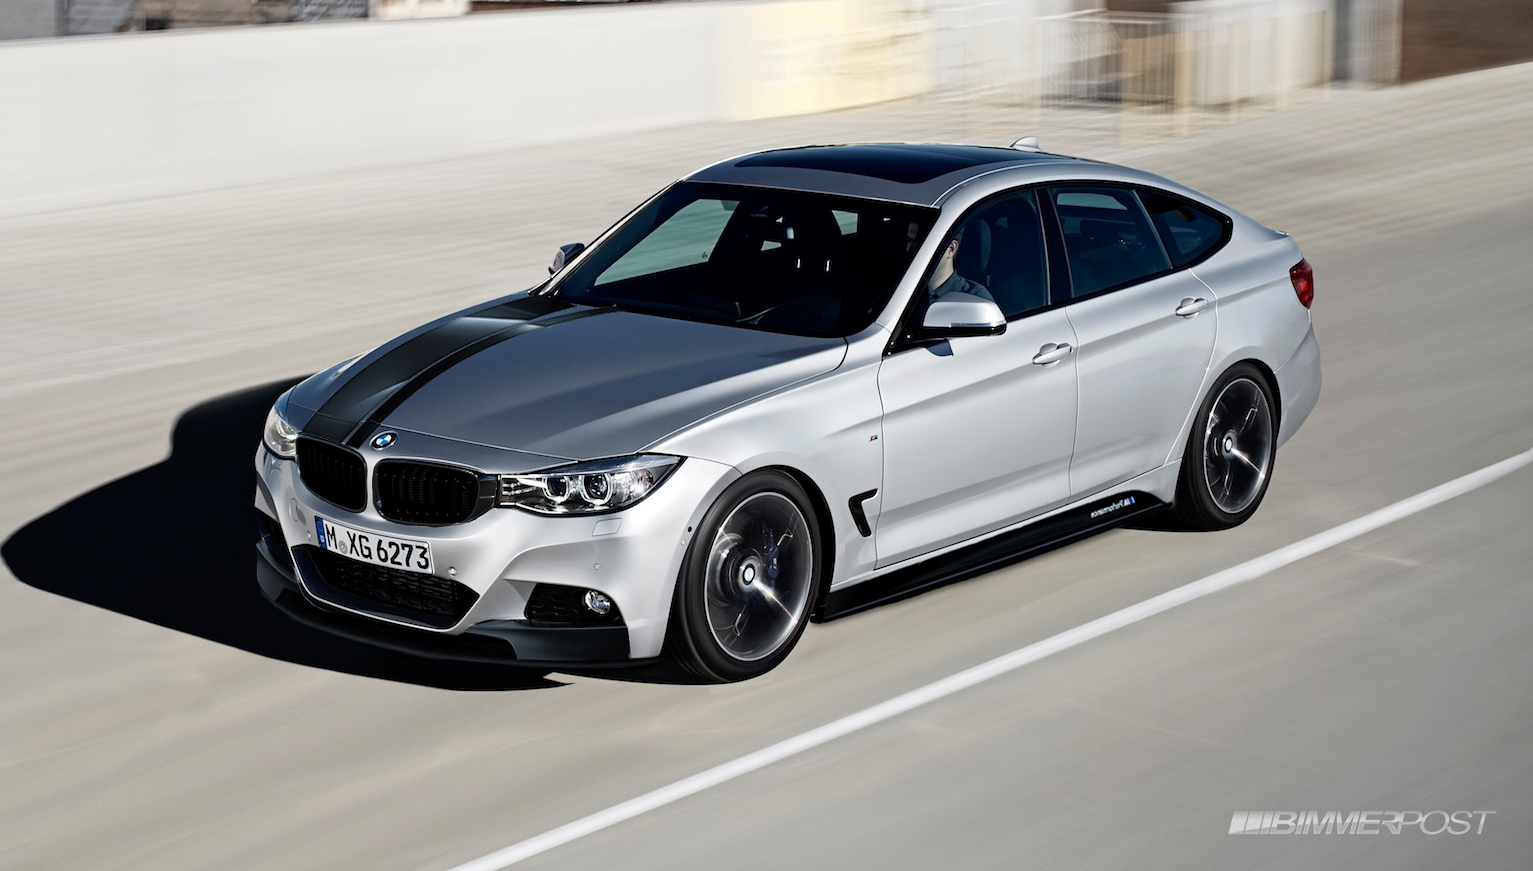 Photoshopped BMW 3Series GT F34 with MPerformance